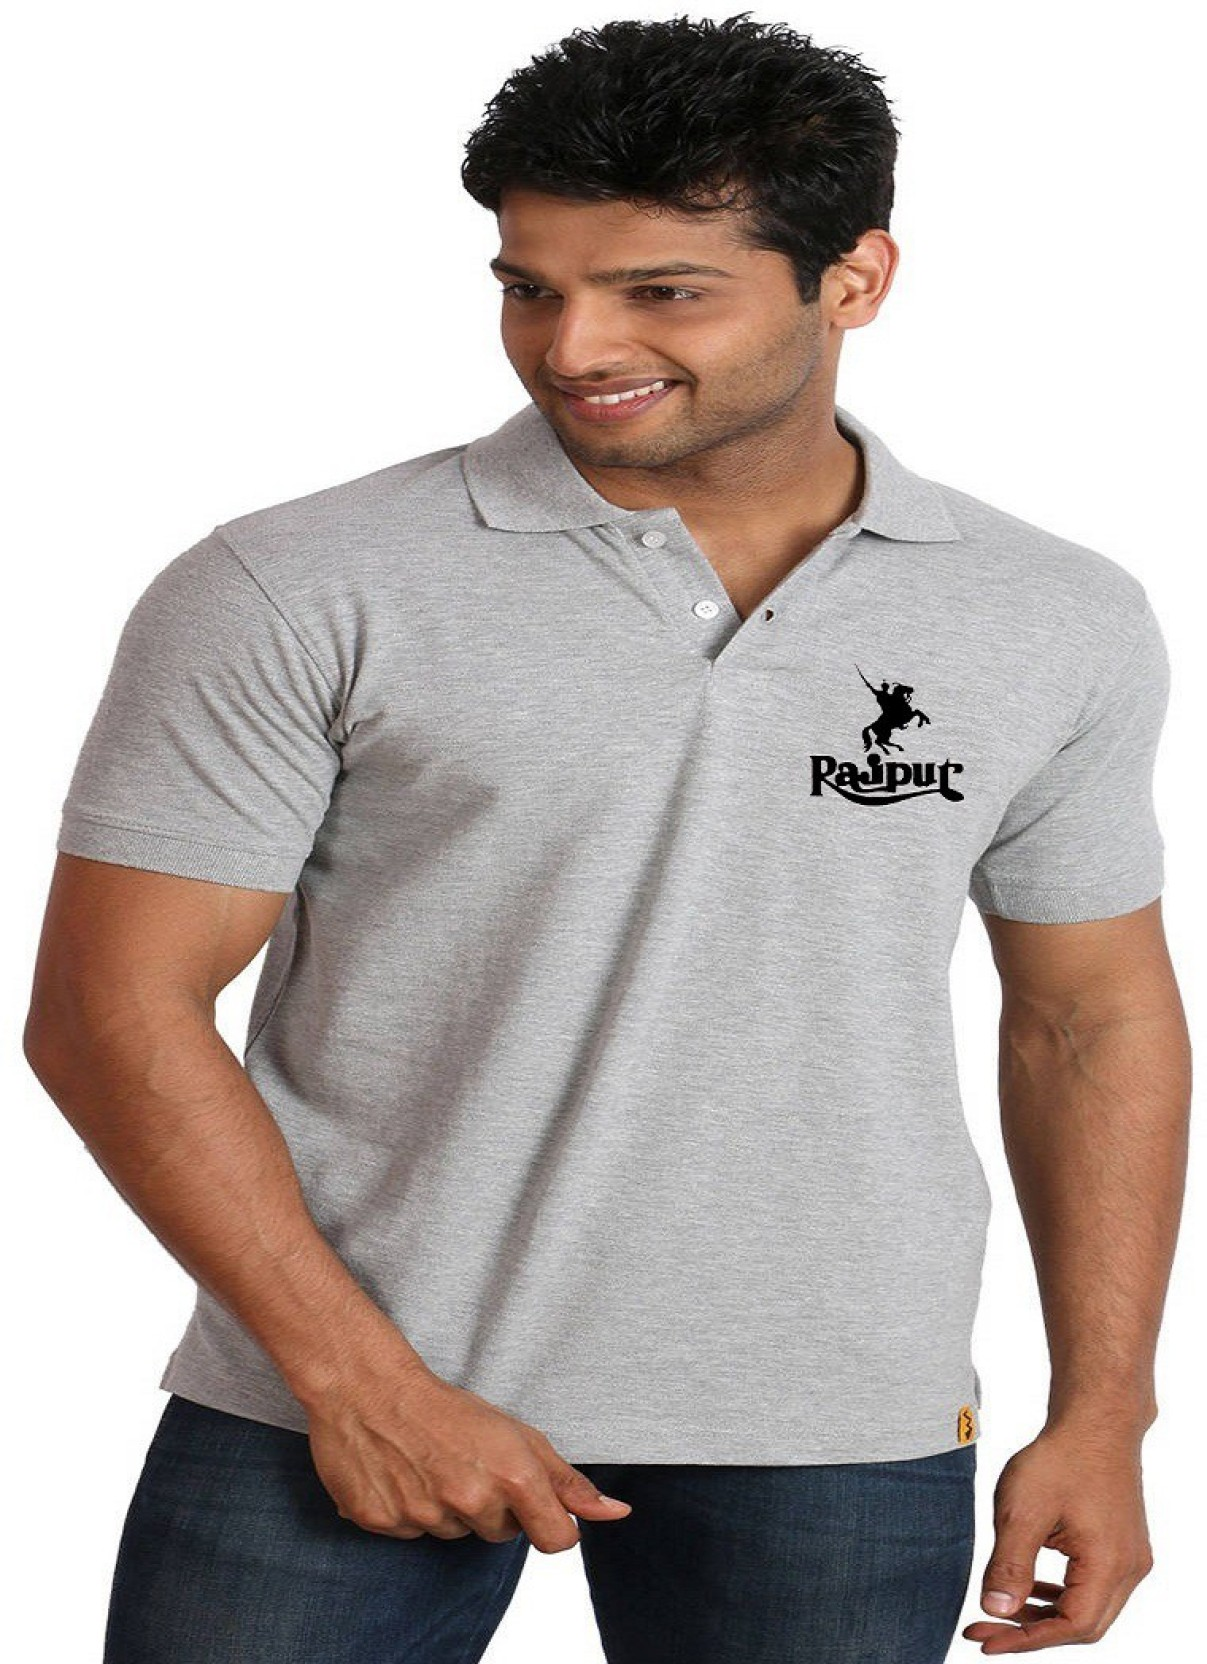 Embroidered Polo T Shirts Online India Lauren Goss